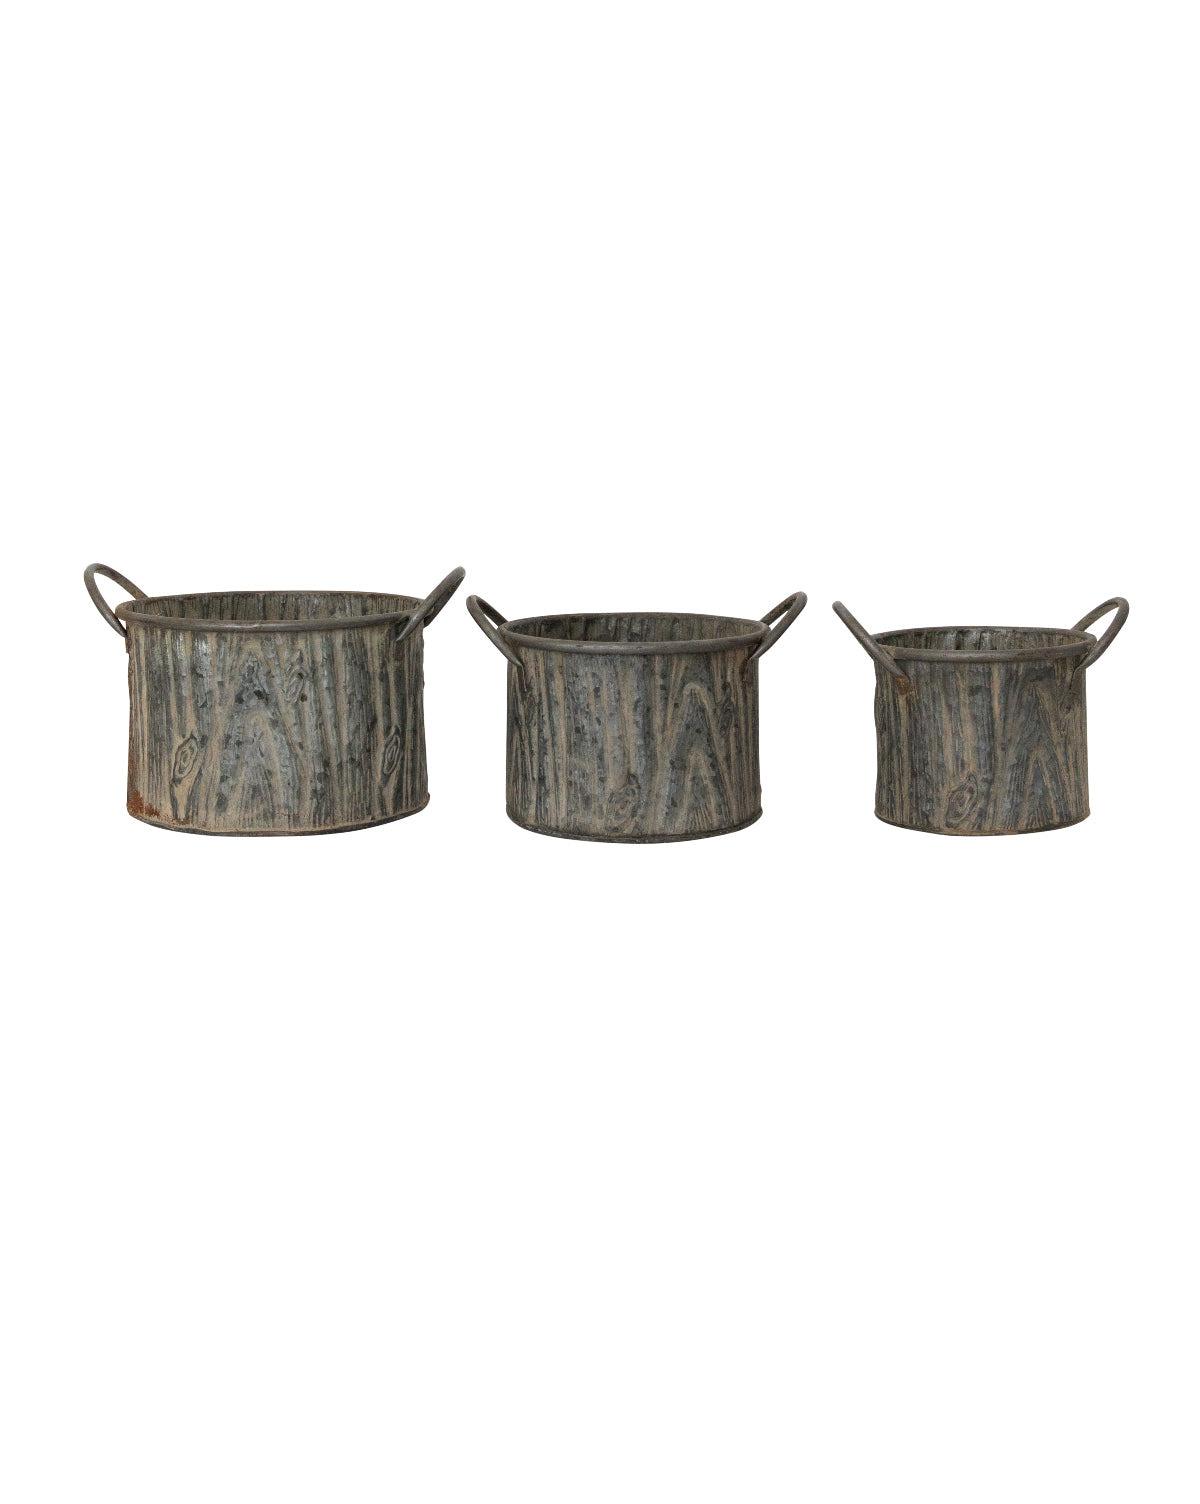 Wood Grain Metal Bucket